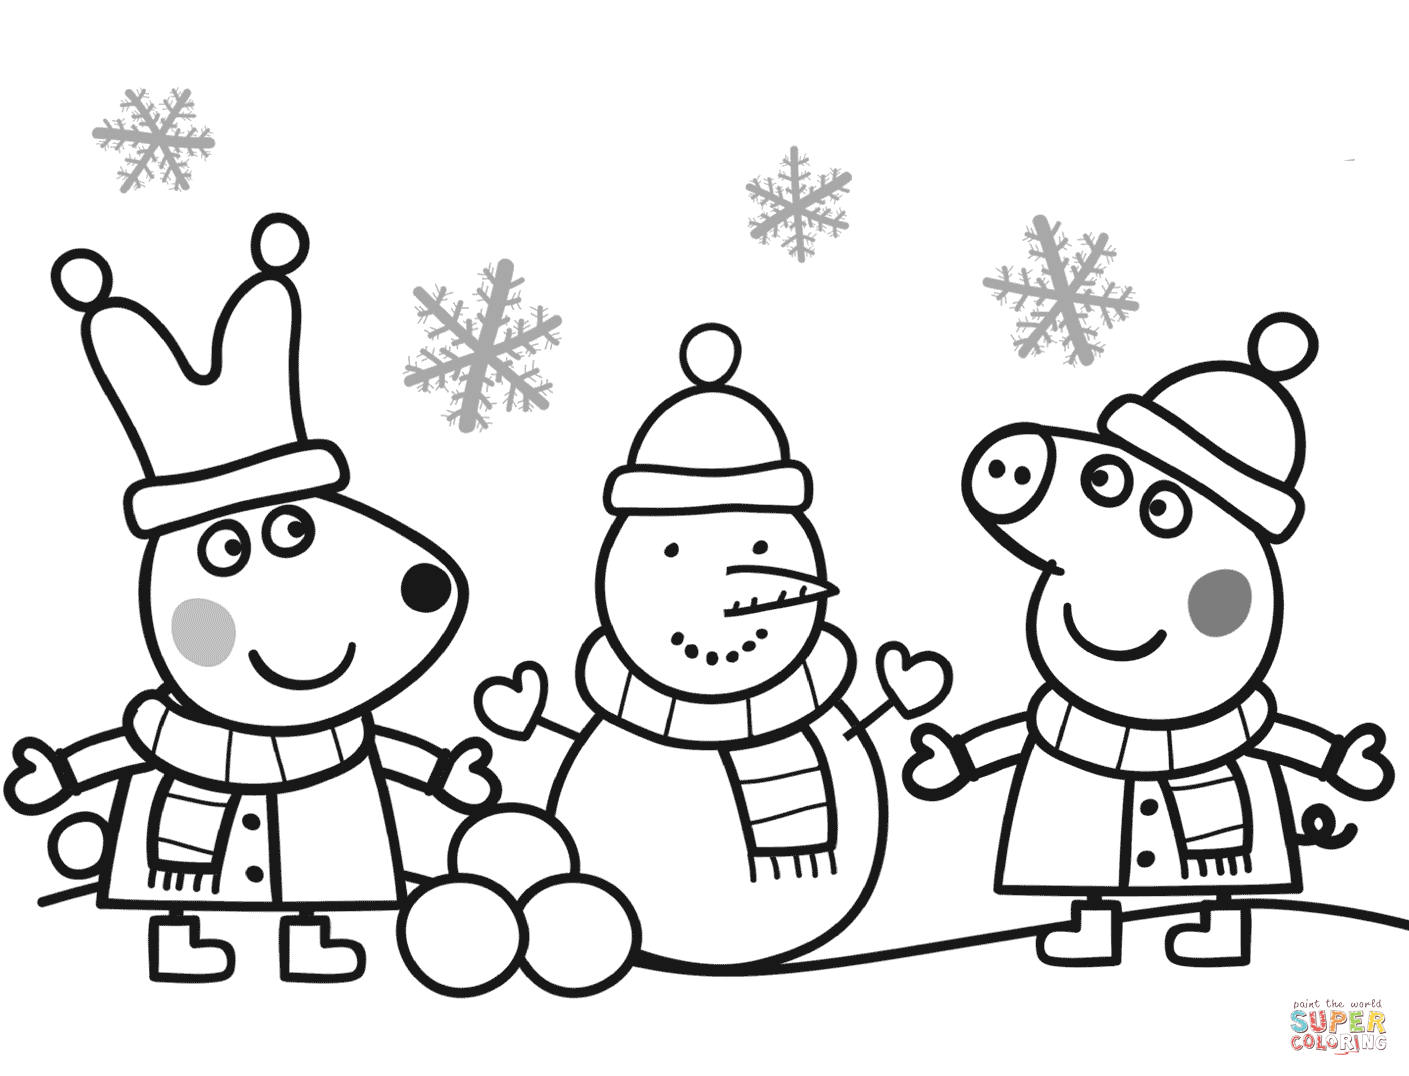 Peppa pig coloring pages gurli gris pinterest christmas colors